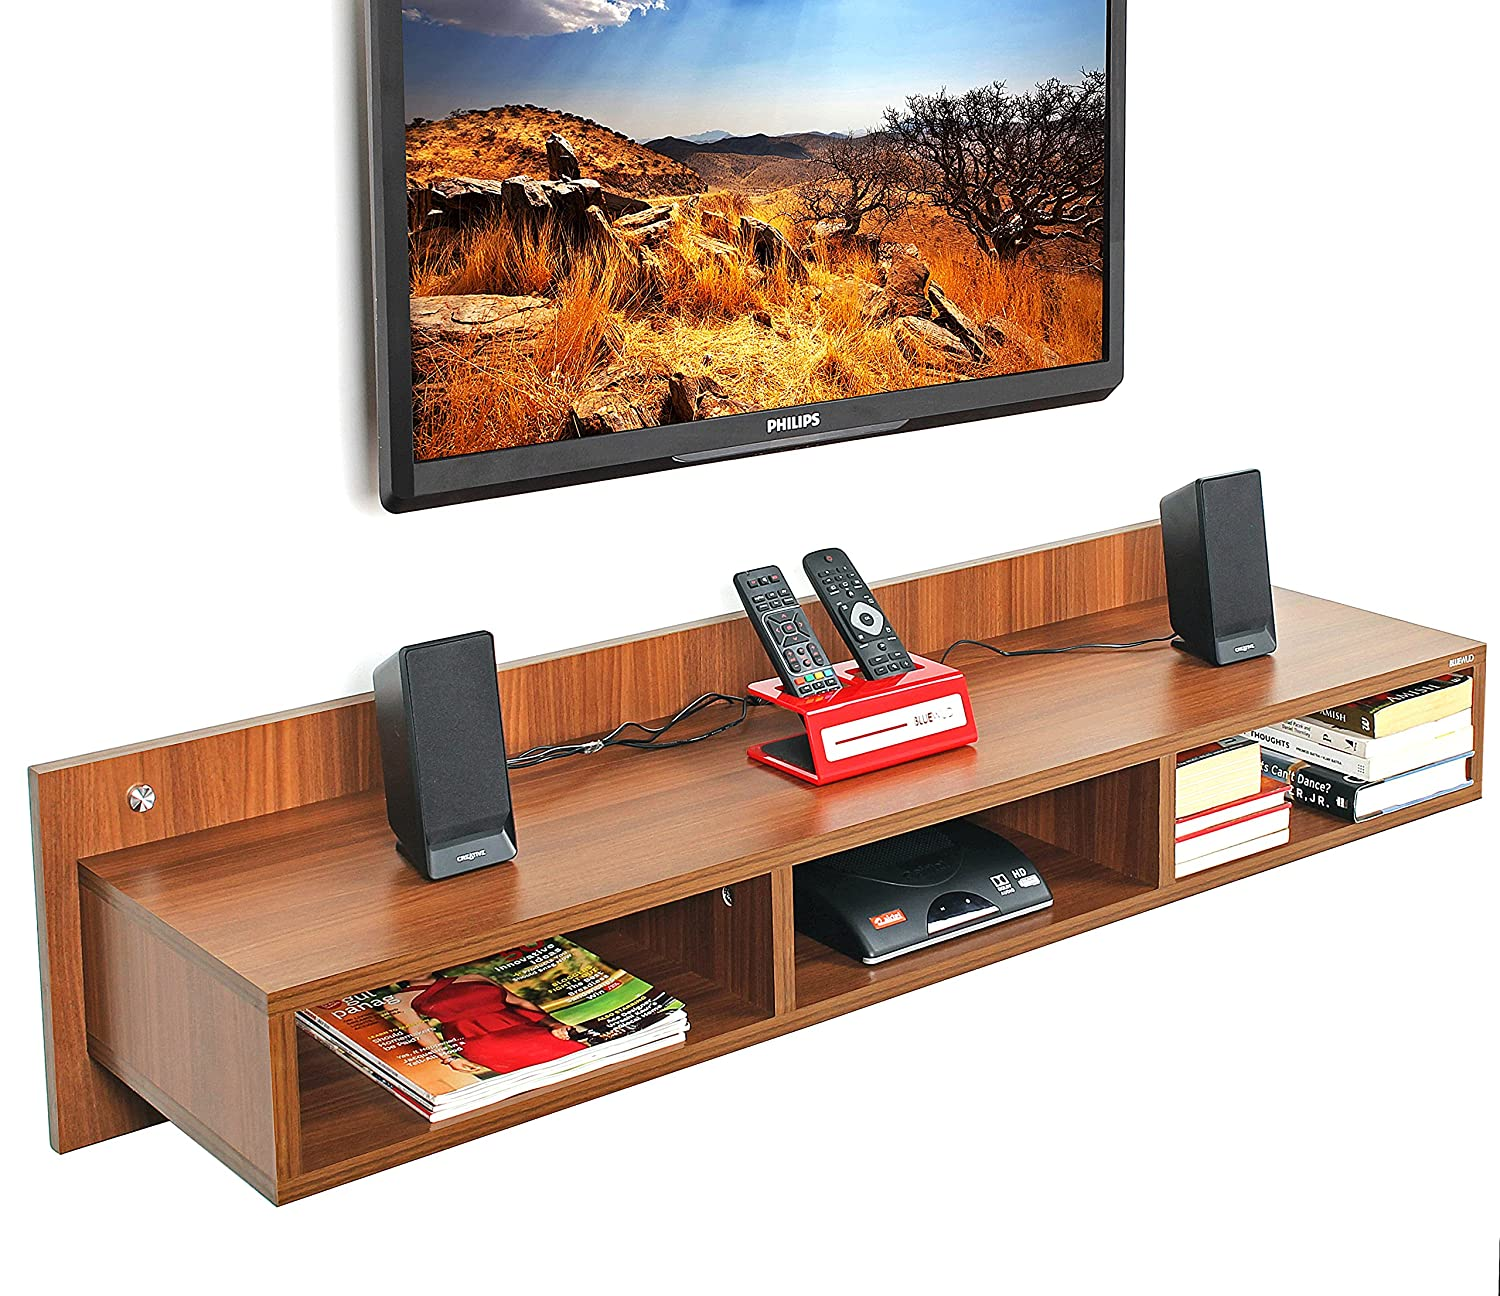 c4980c85d08 Bluewud Reynold TV Entertainment Unit Wall Set Top Box Stand Shelf (Large  Walnut)  Amazon.in  Home   Kitchen